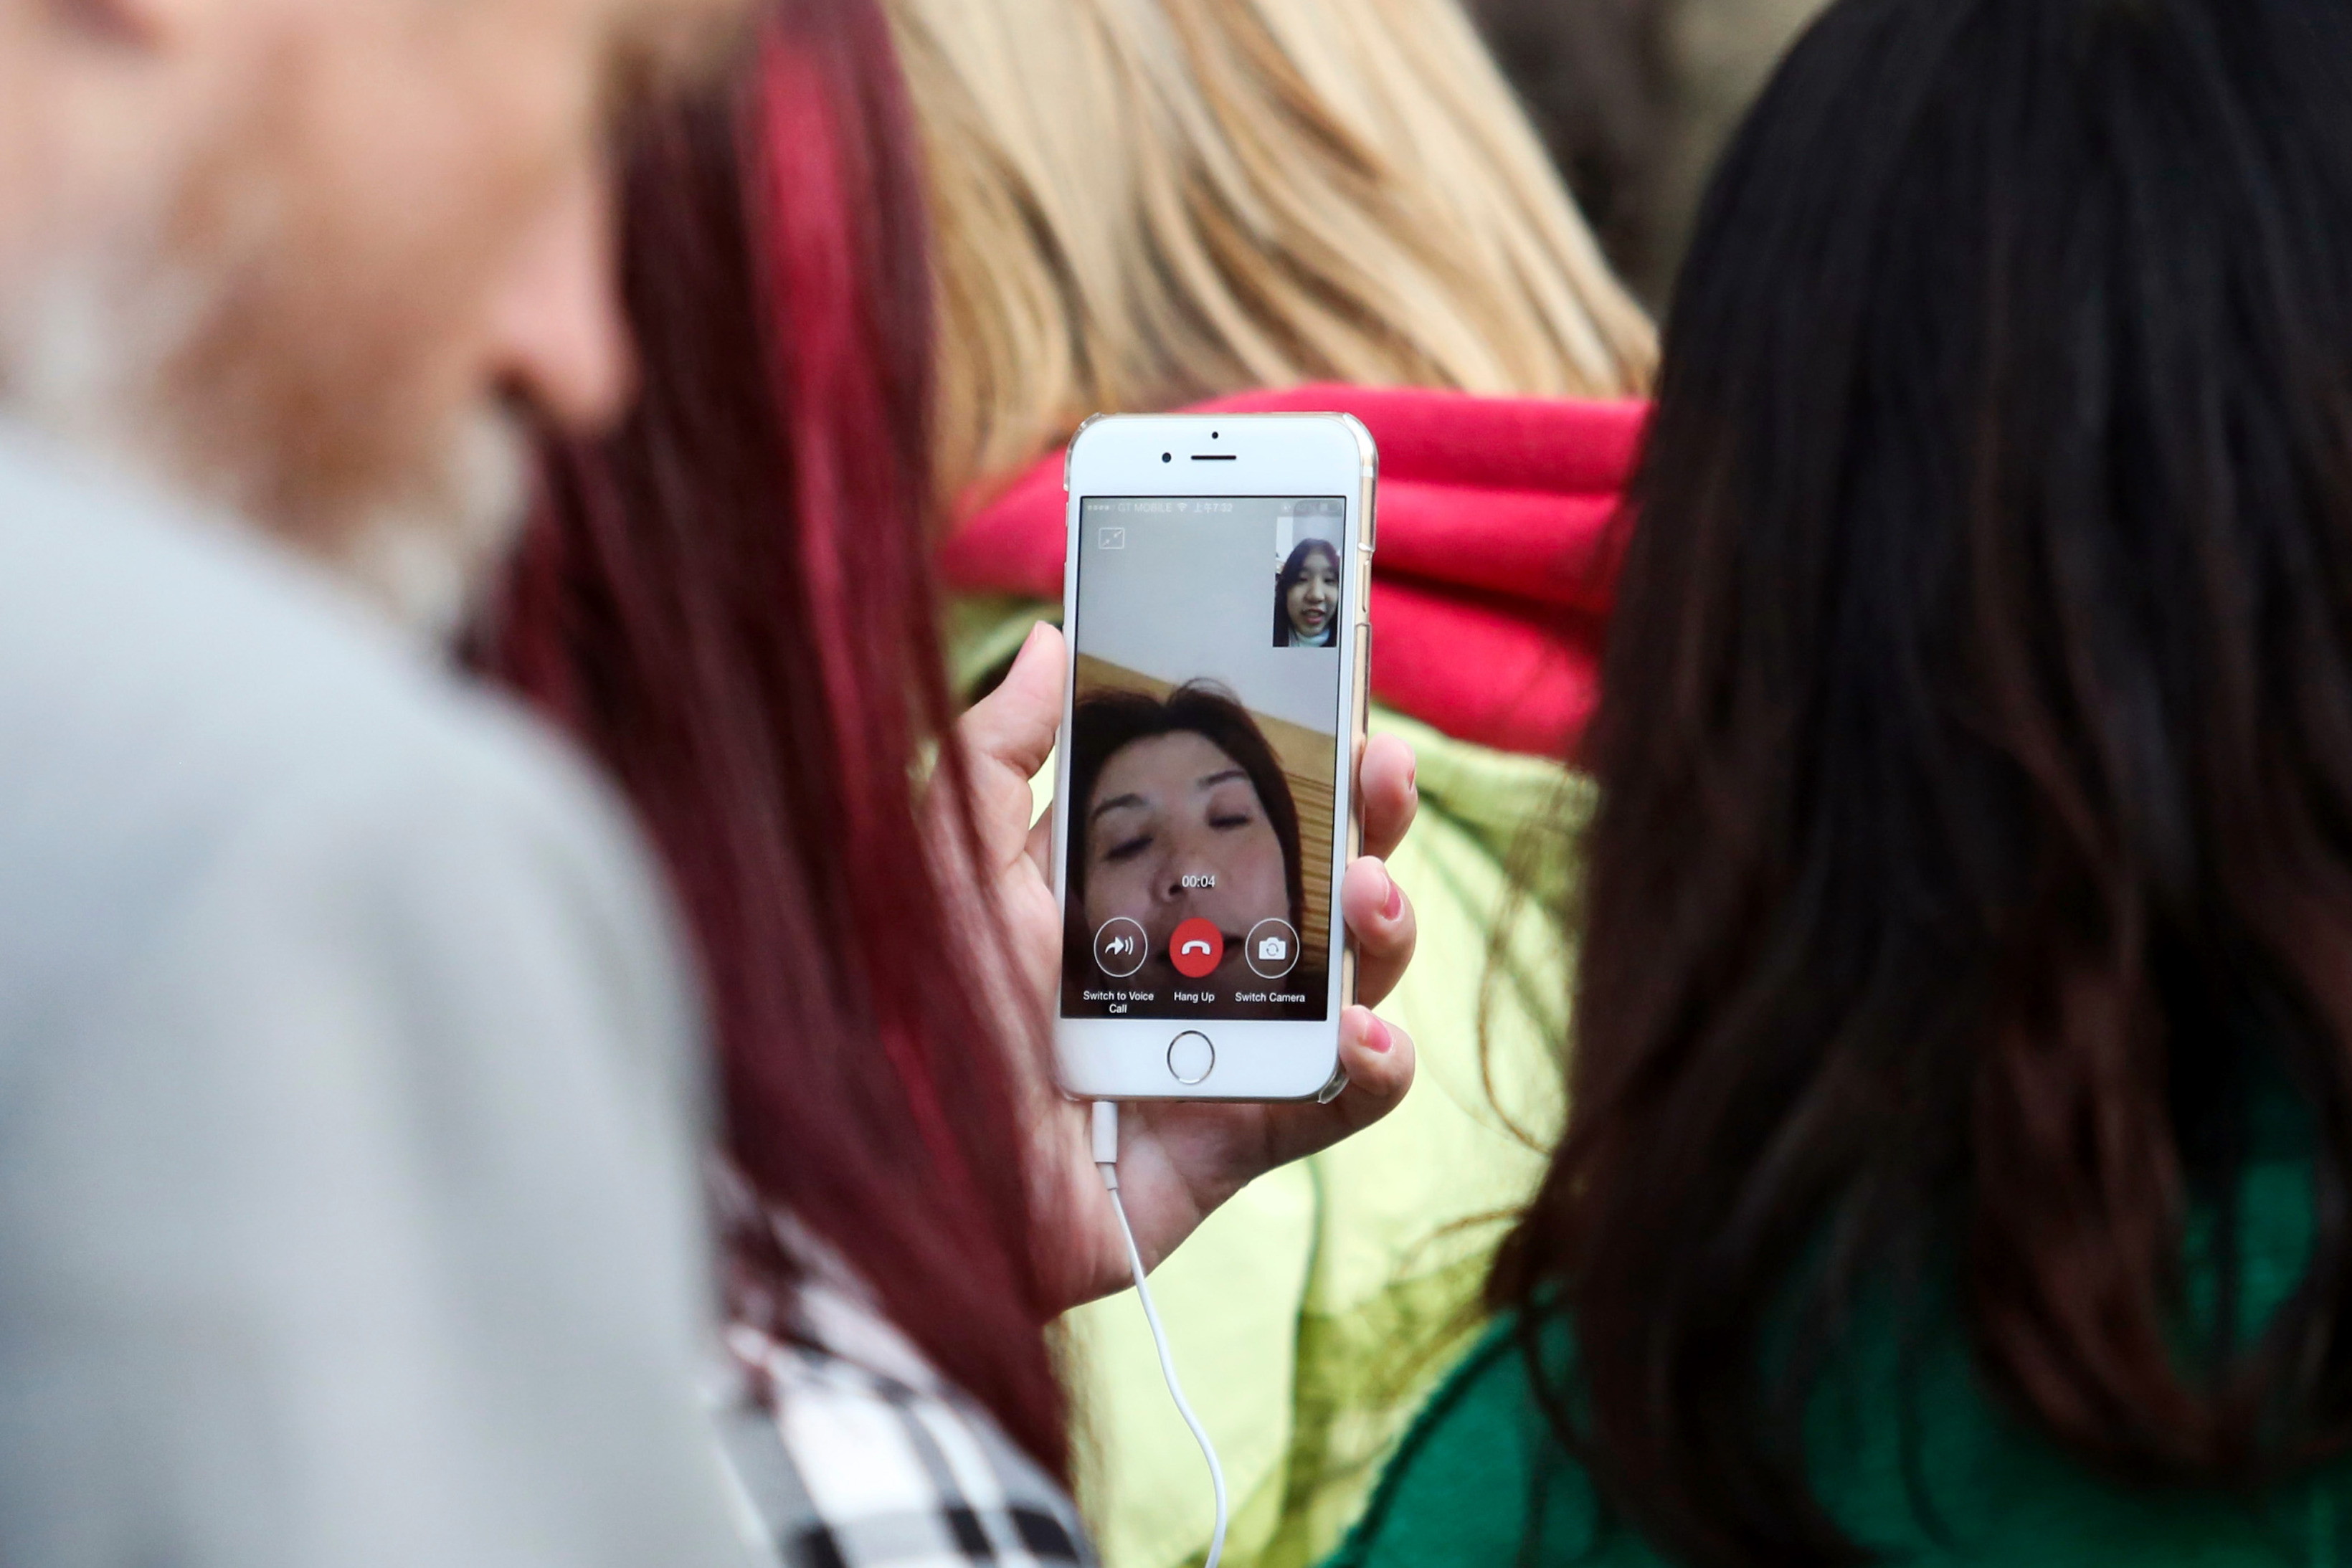 Apple Releases Software Fix for FaceTime Eavesdropping Flaw - Bloomberg